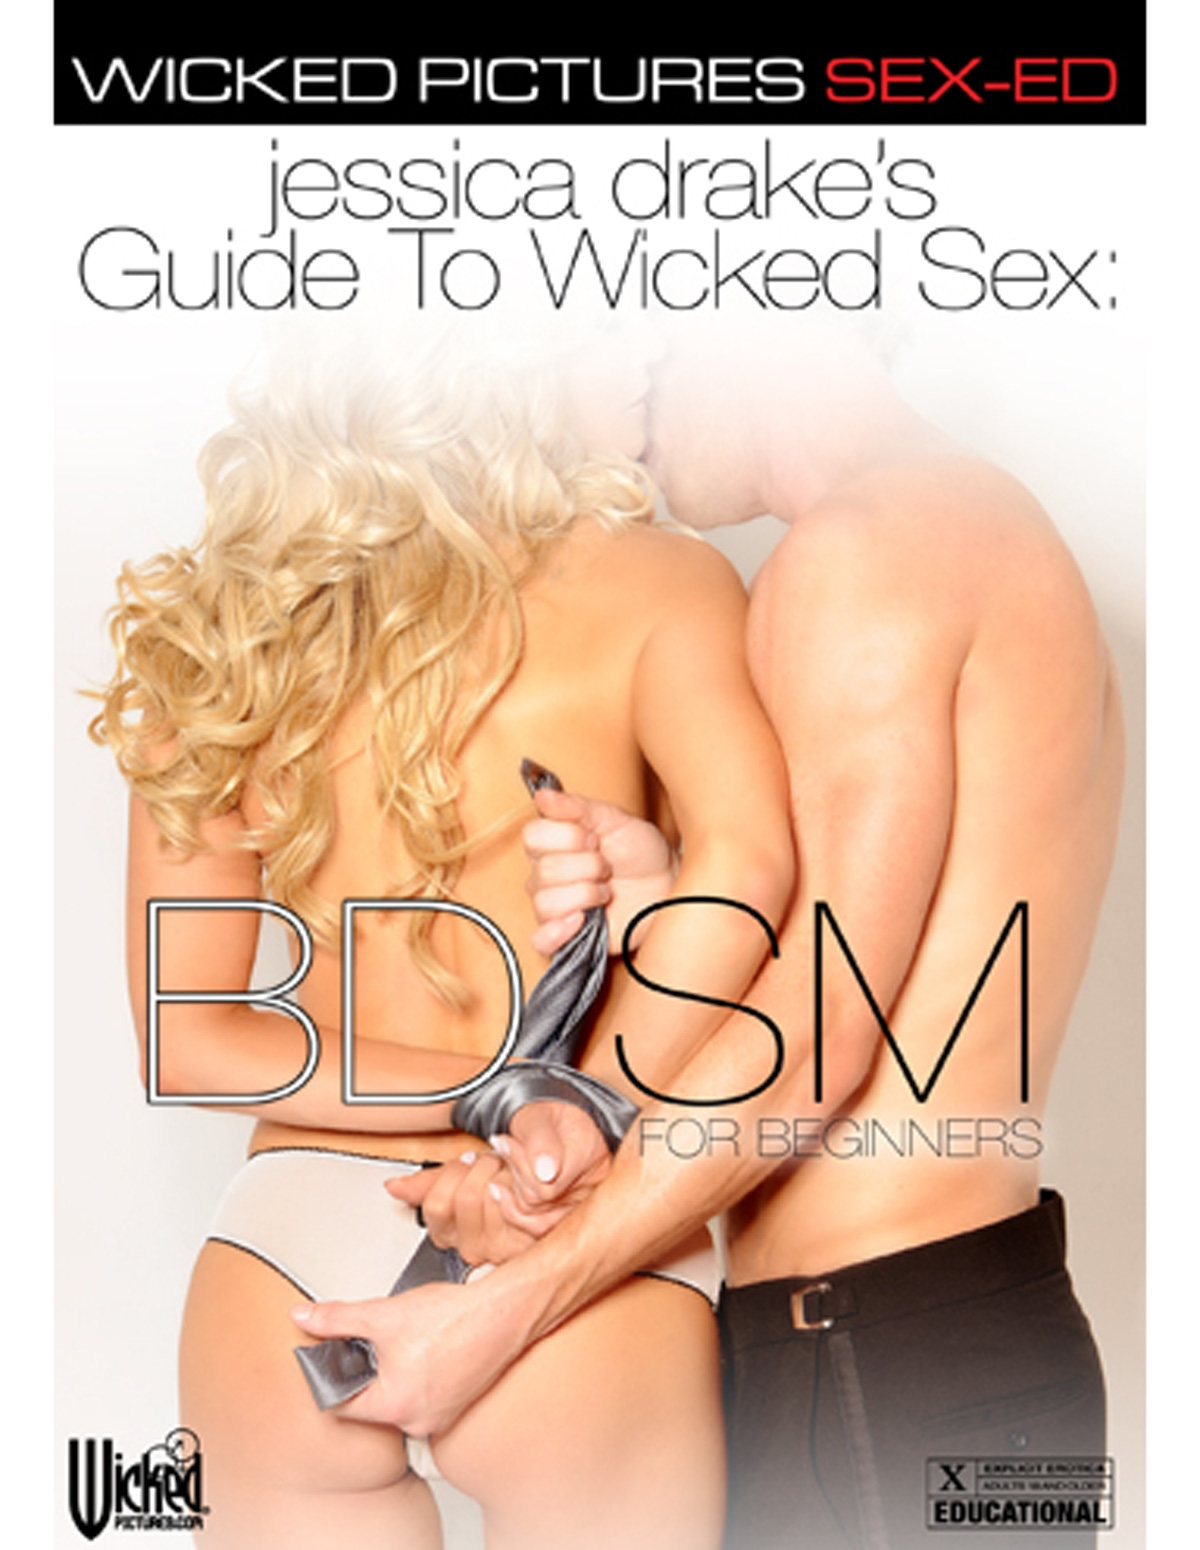 Jessica Drakes Bdsm For Beginners Dvd